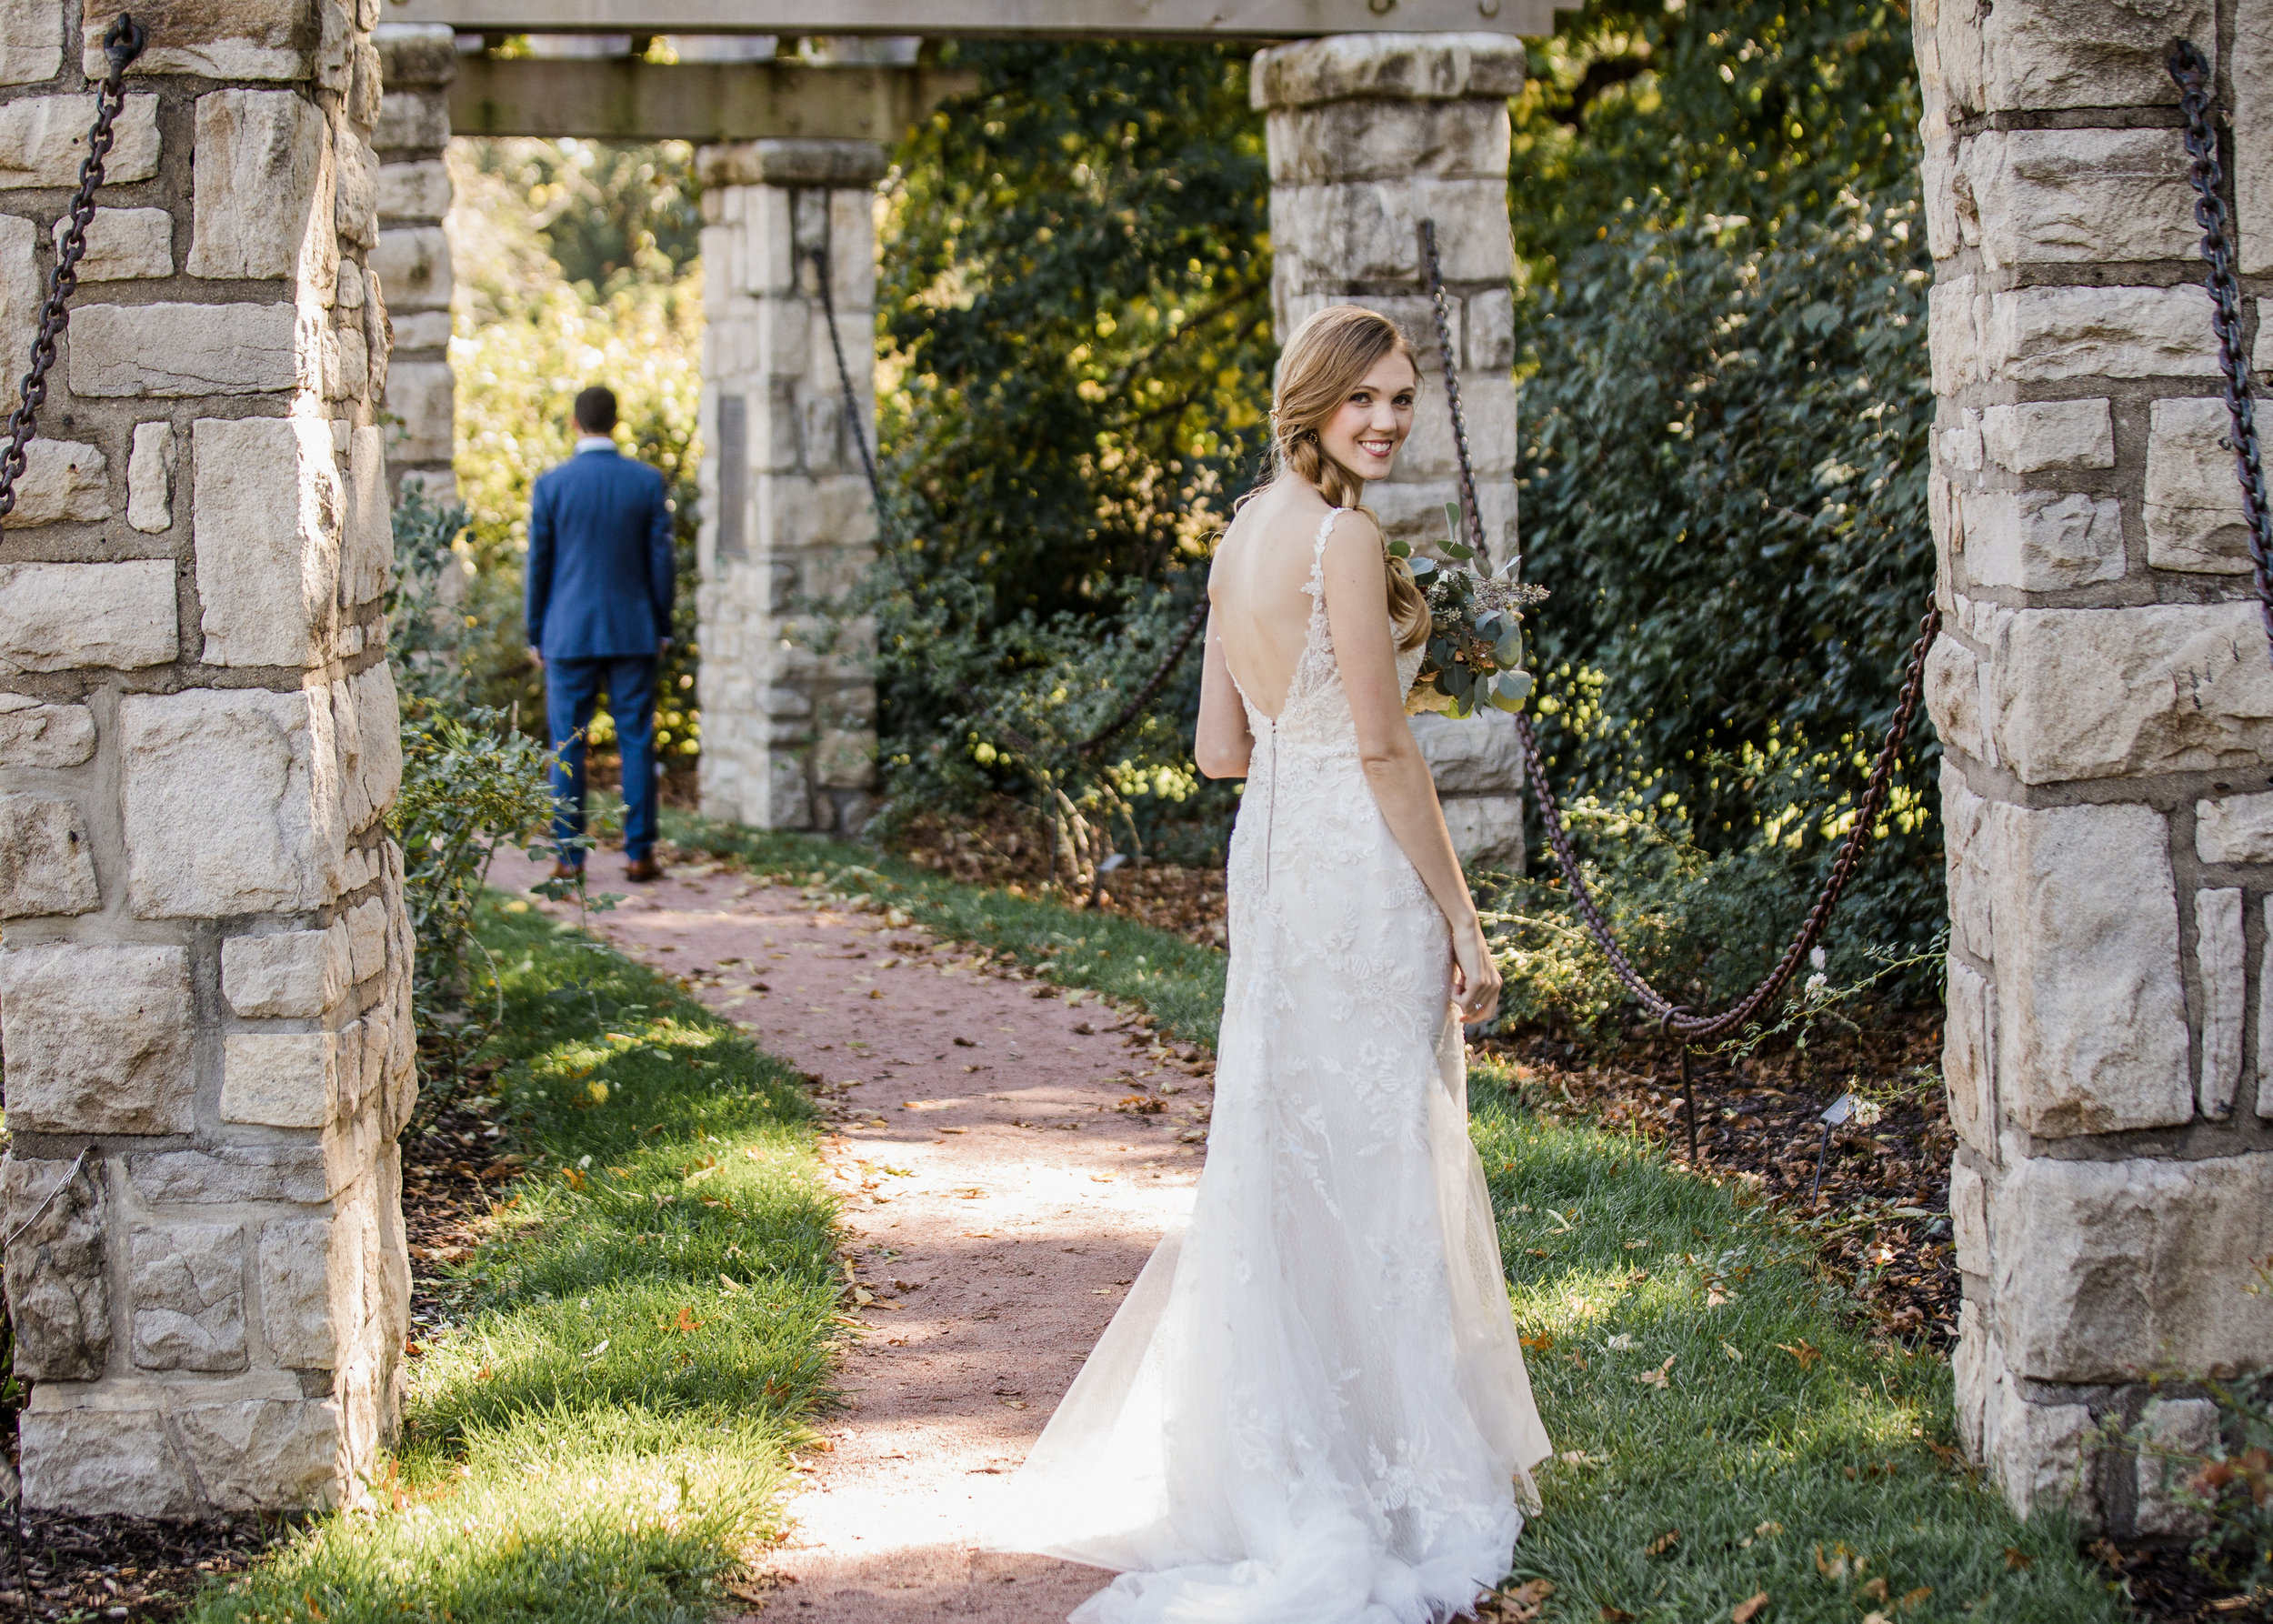 Emily & Scott Wedding | Black Coffee Photo Co 012.jpg